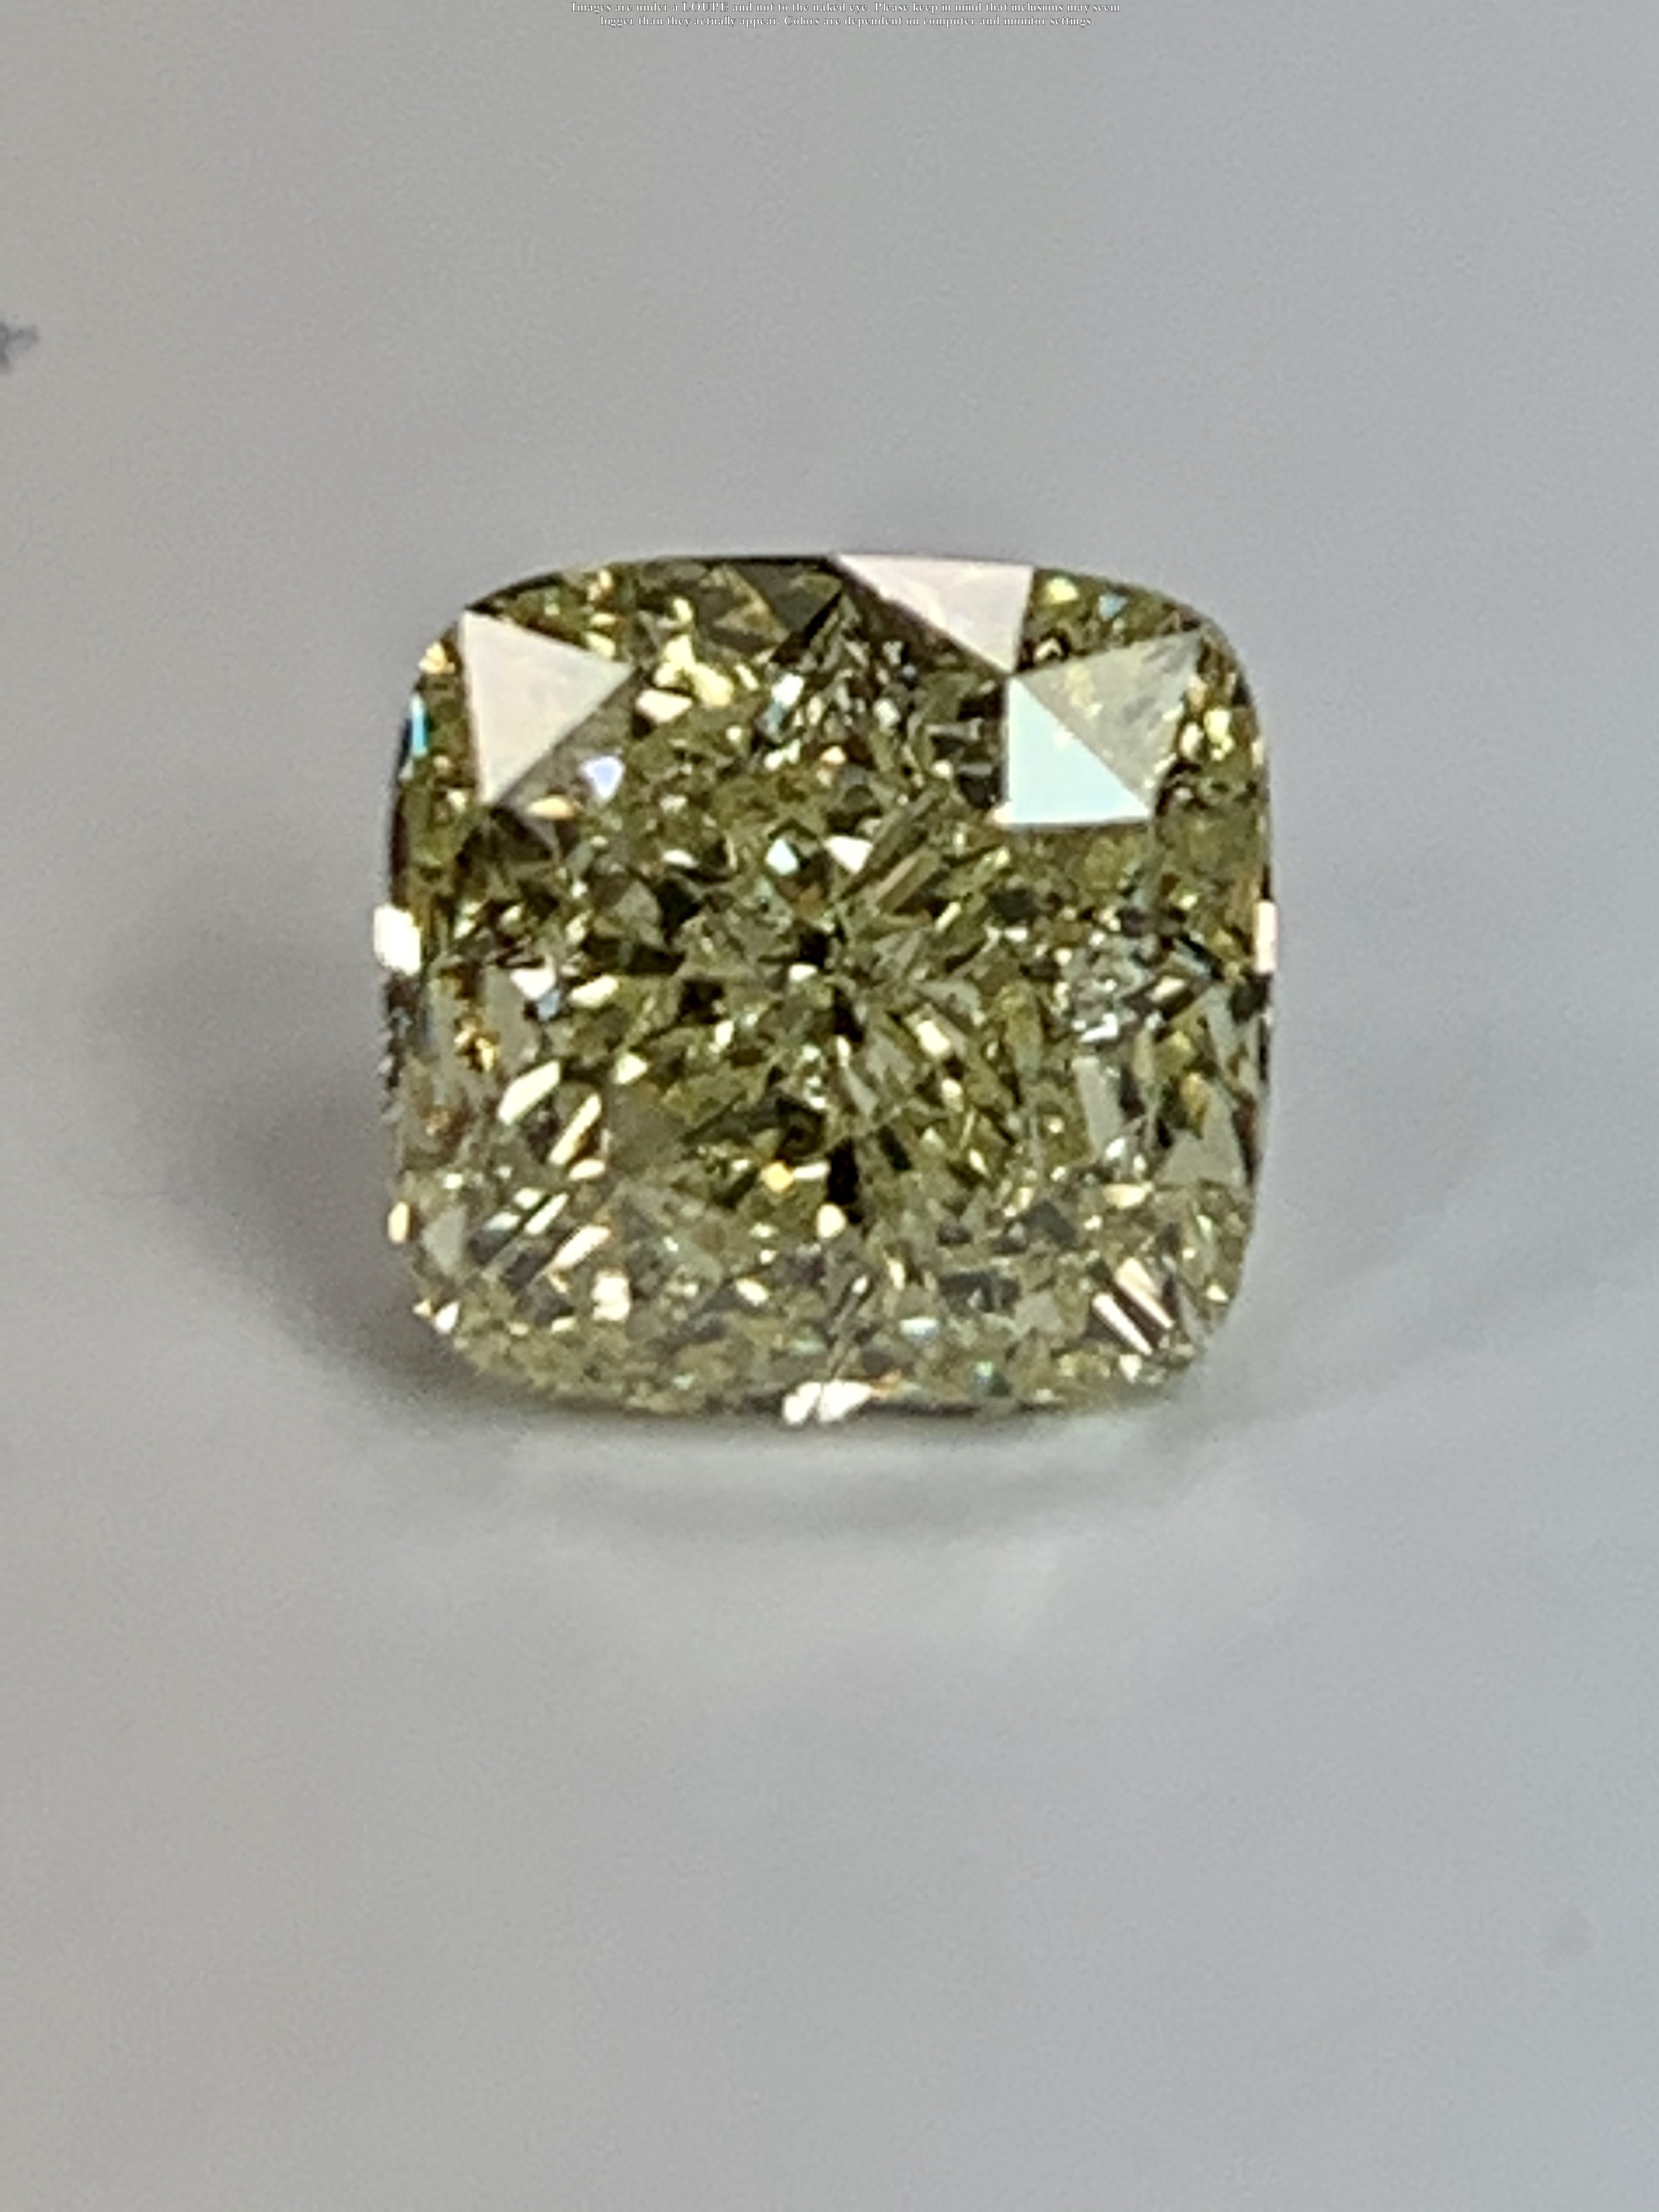 Gumer & Co Jewelry - Diamond Image - C03322